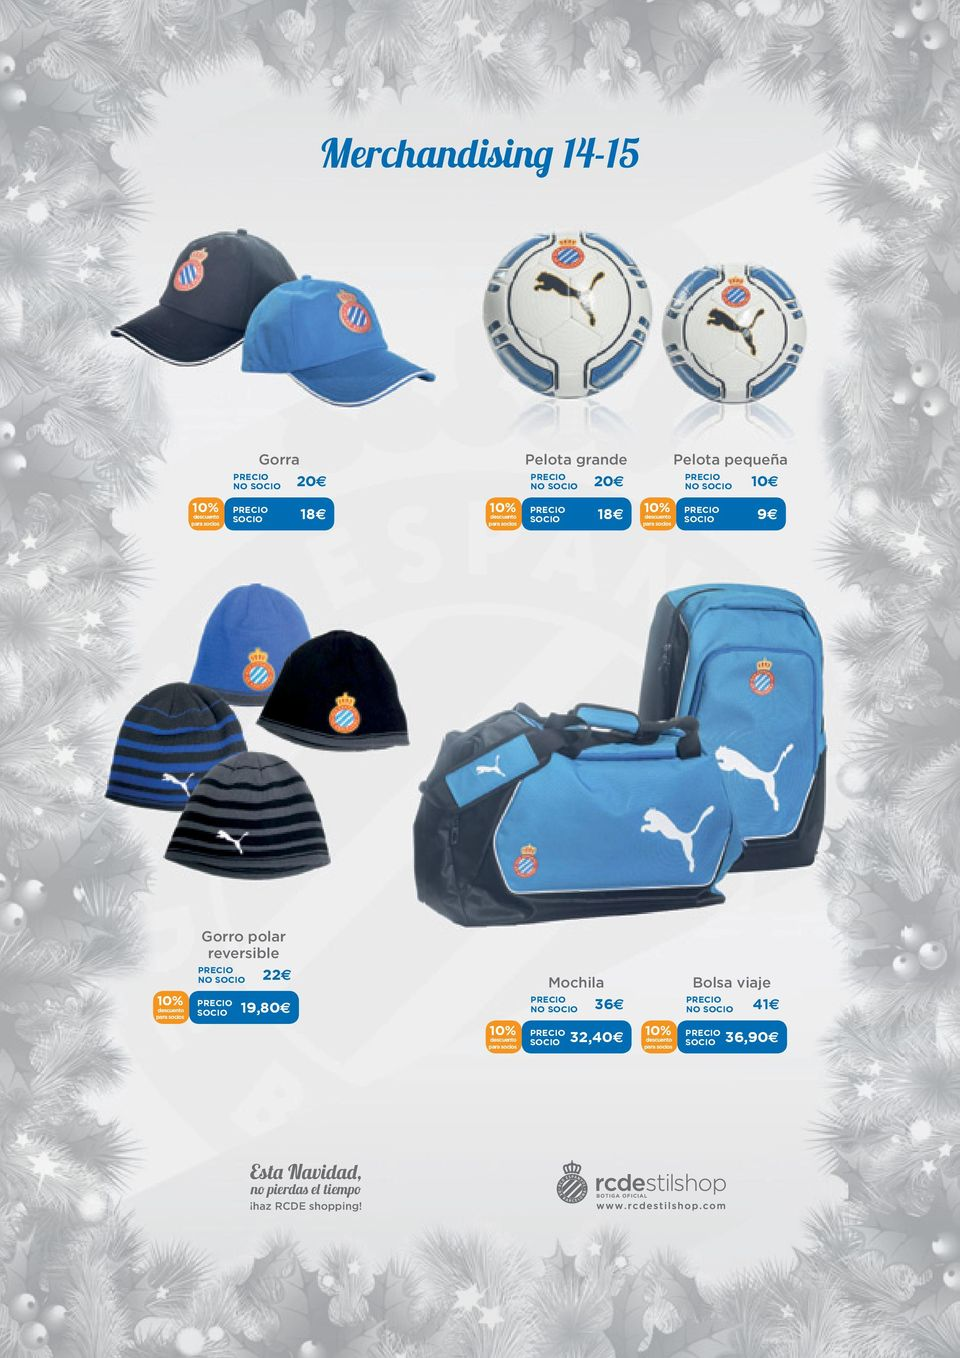 Gorro polar reversible 22 19,80